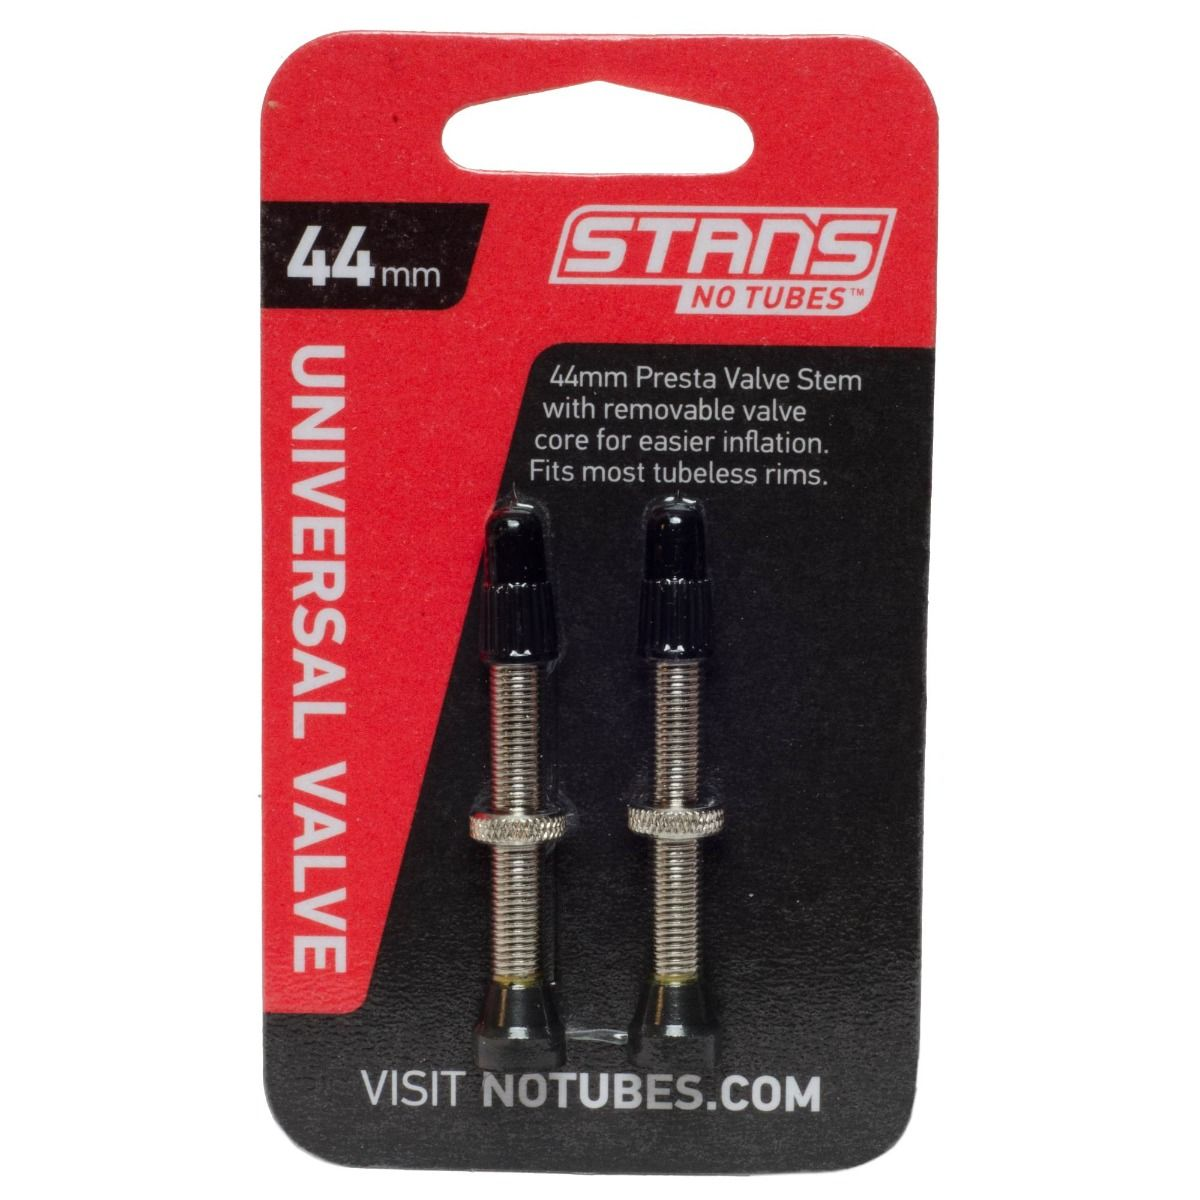 how to put stans in a presta valve